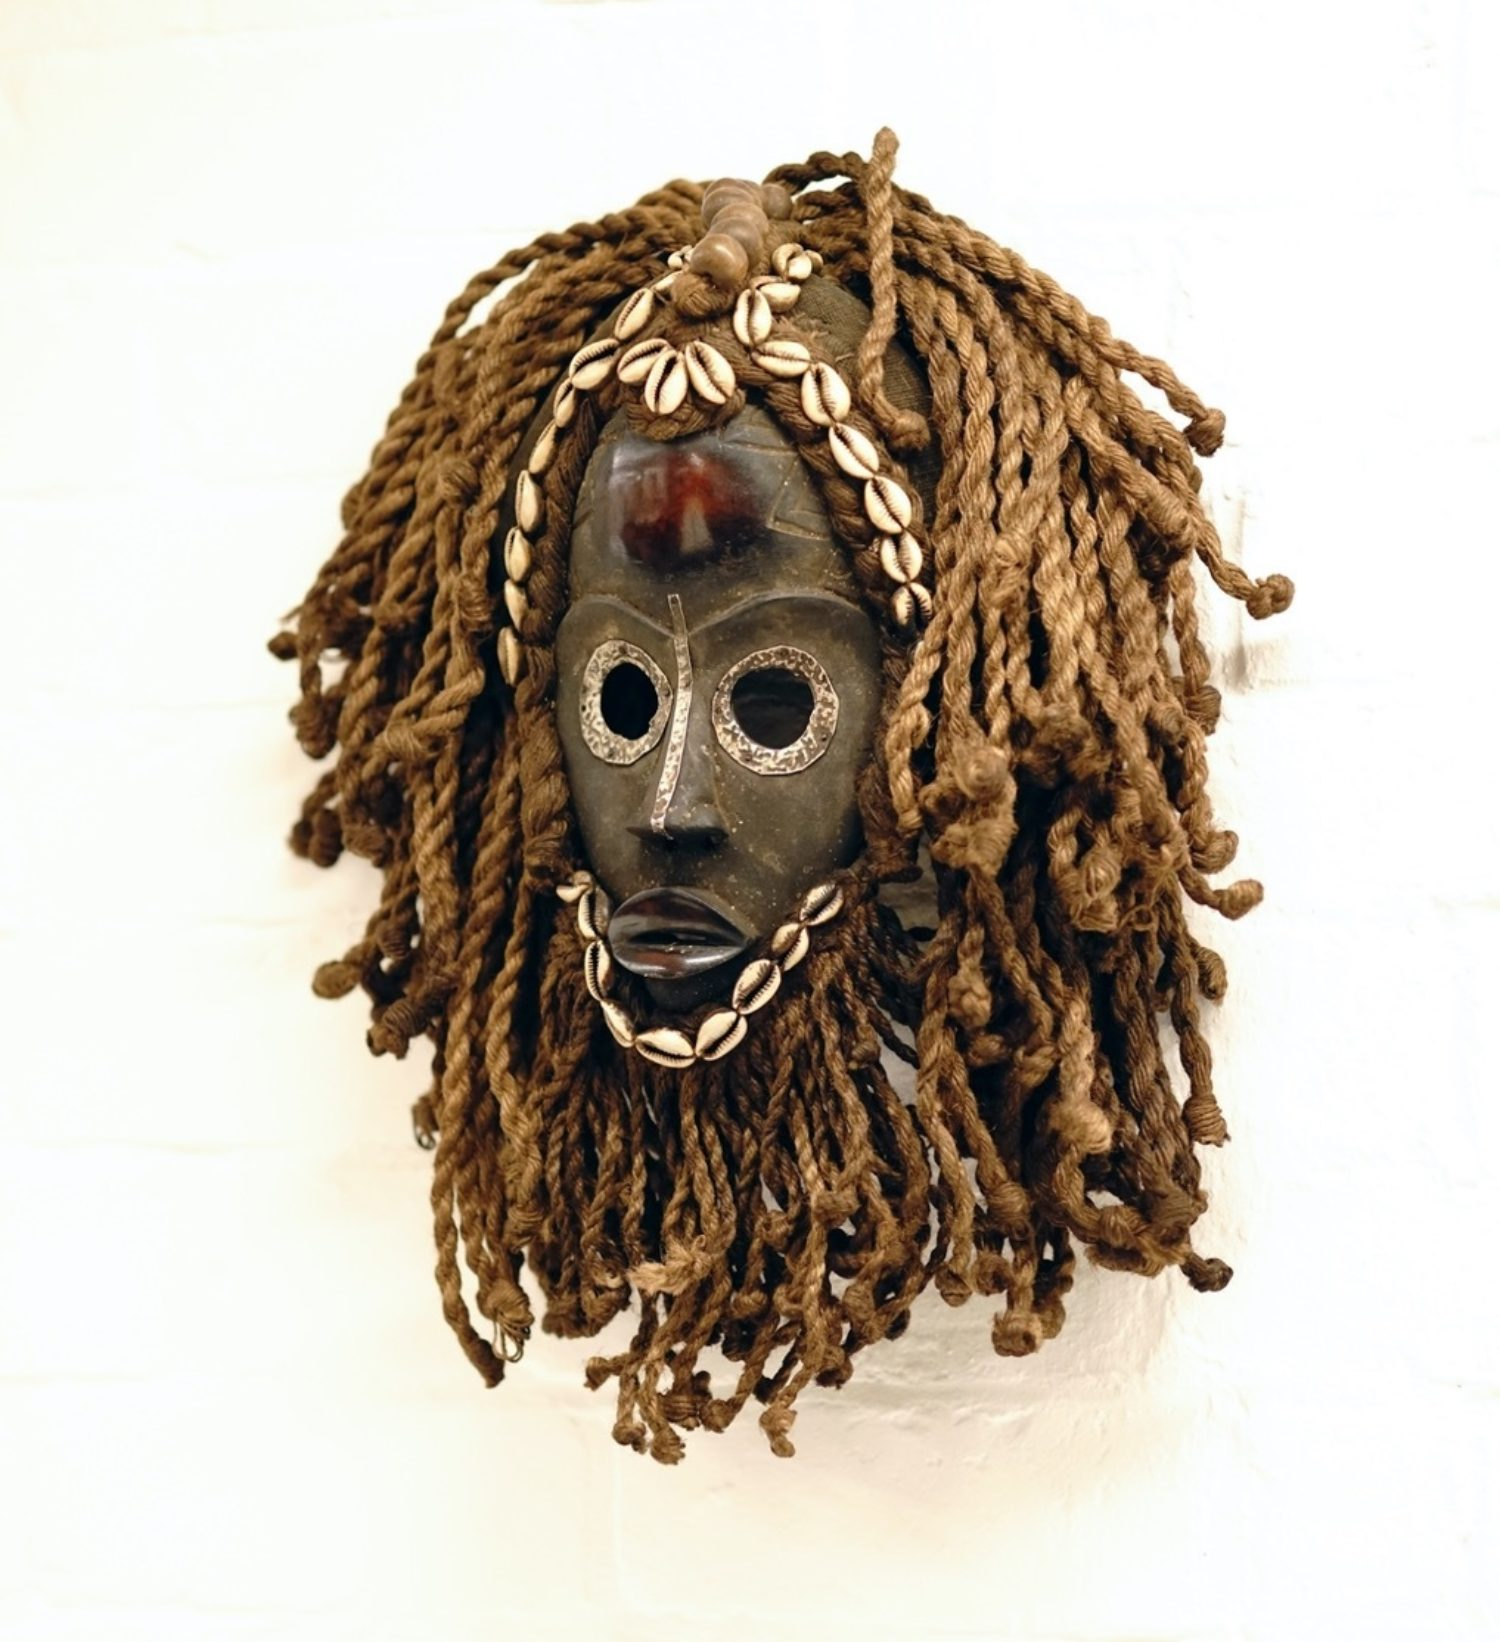 Virgin's african mask in agile office fit out